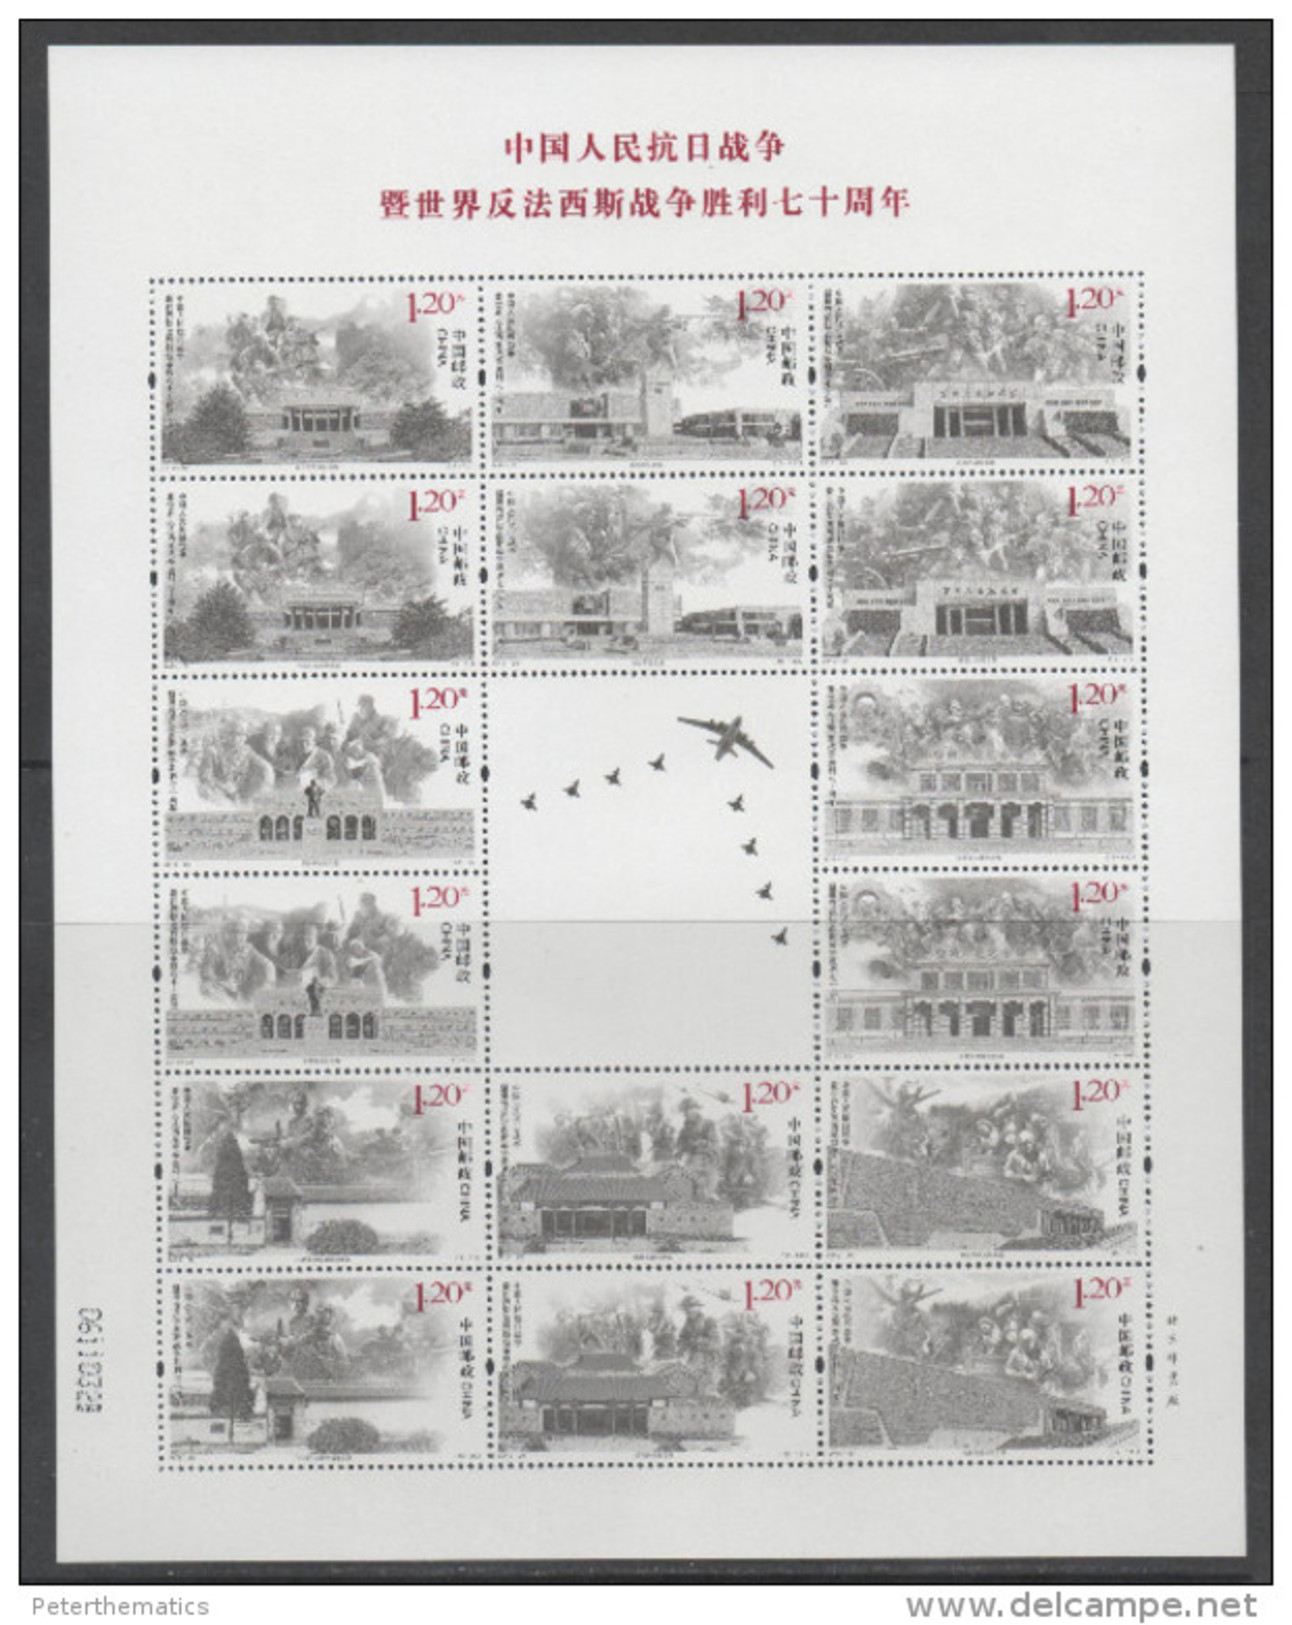 CHINA, 2015, MNH, WWII, 70TH ANNIVERSARY OF VICTORY AGAINST FASCIM, 2 SHEETLETS OF 2 SETS(26v) - 2. Weltkrieg